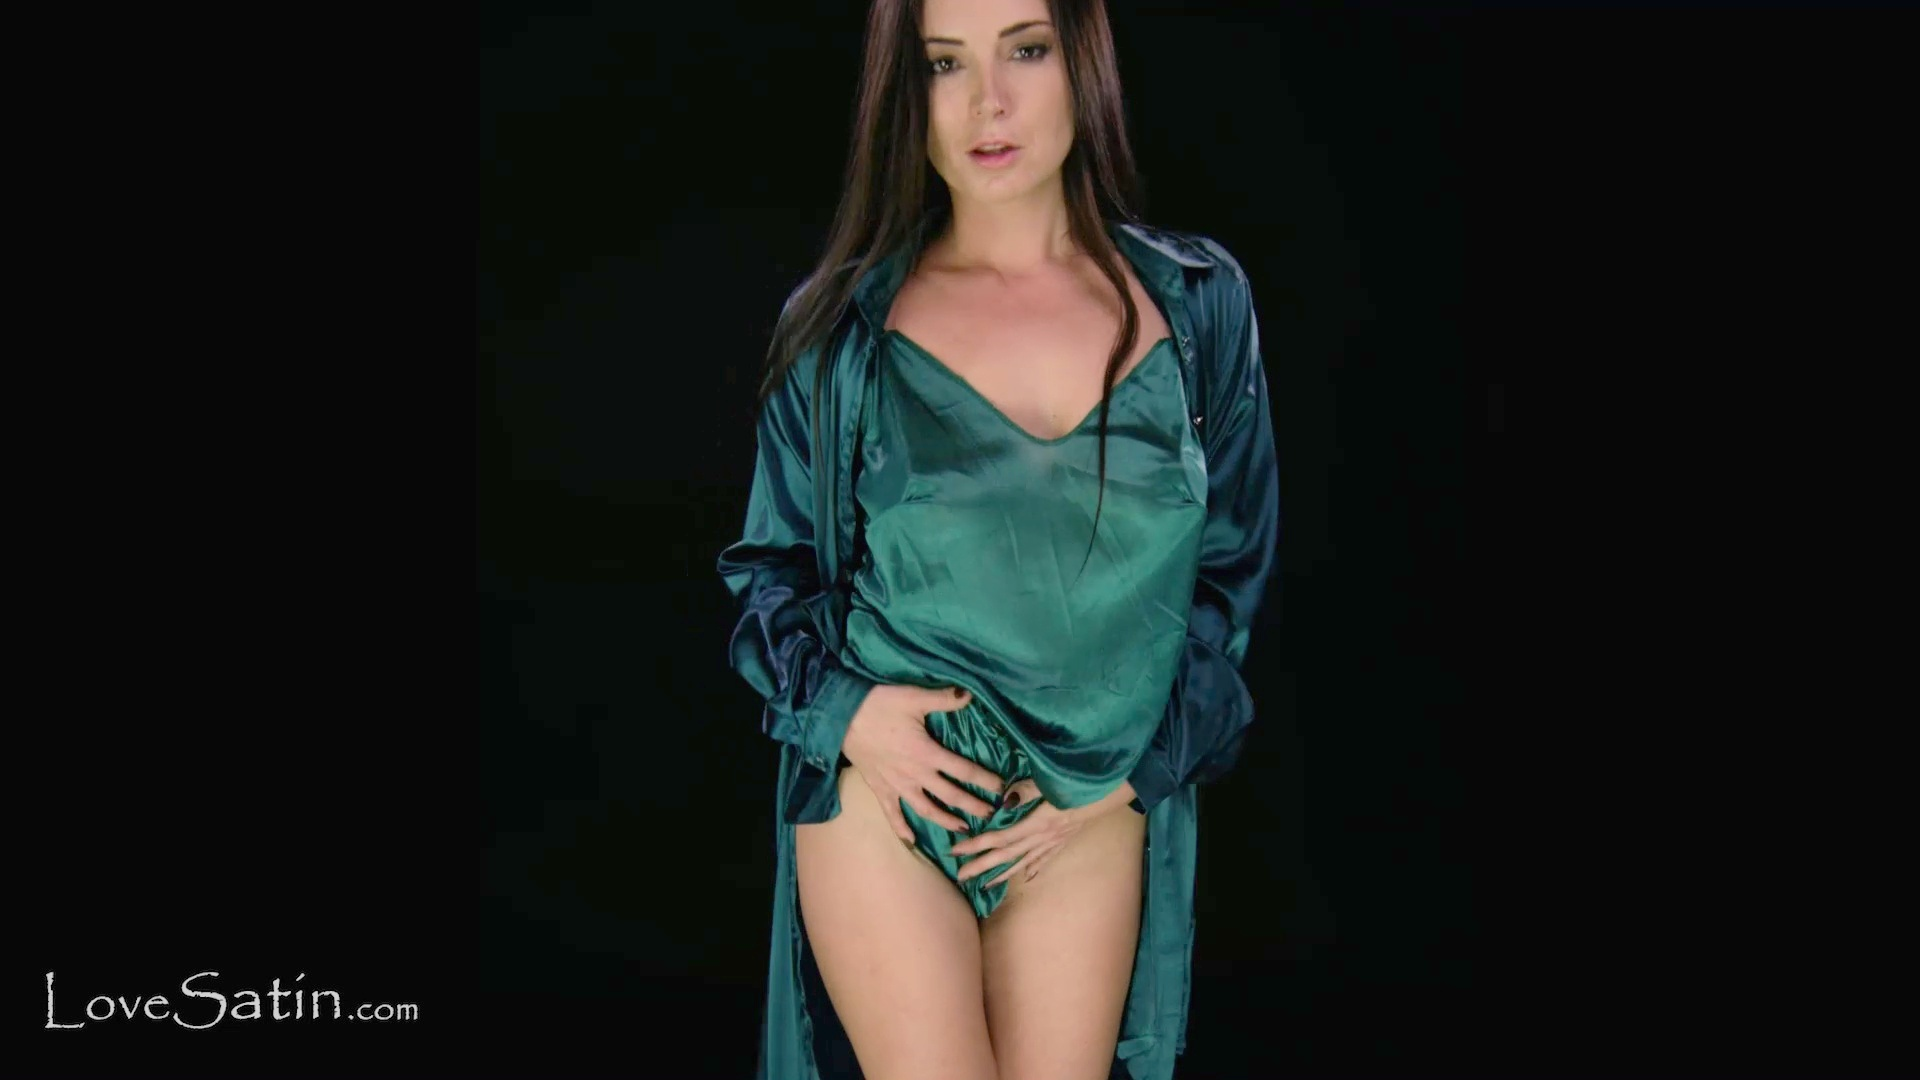 content/Cindy/Unbuttoning my Teal Satin Dress - Cindy/1.jpg